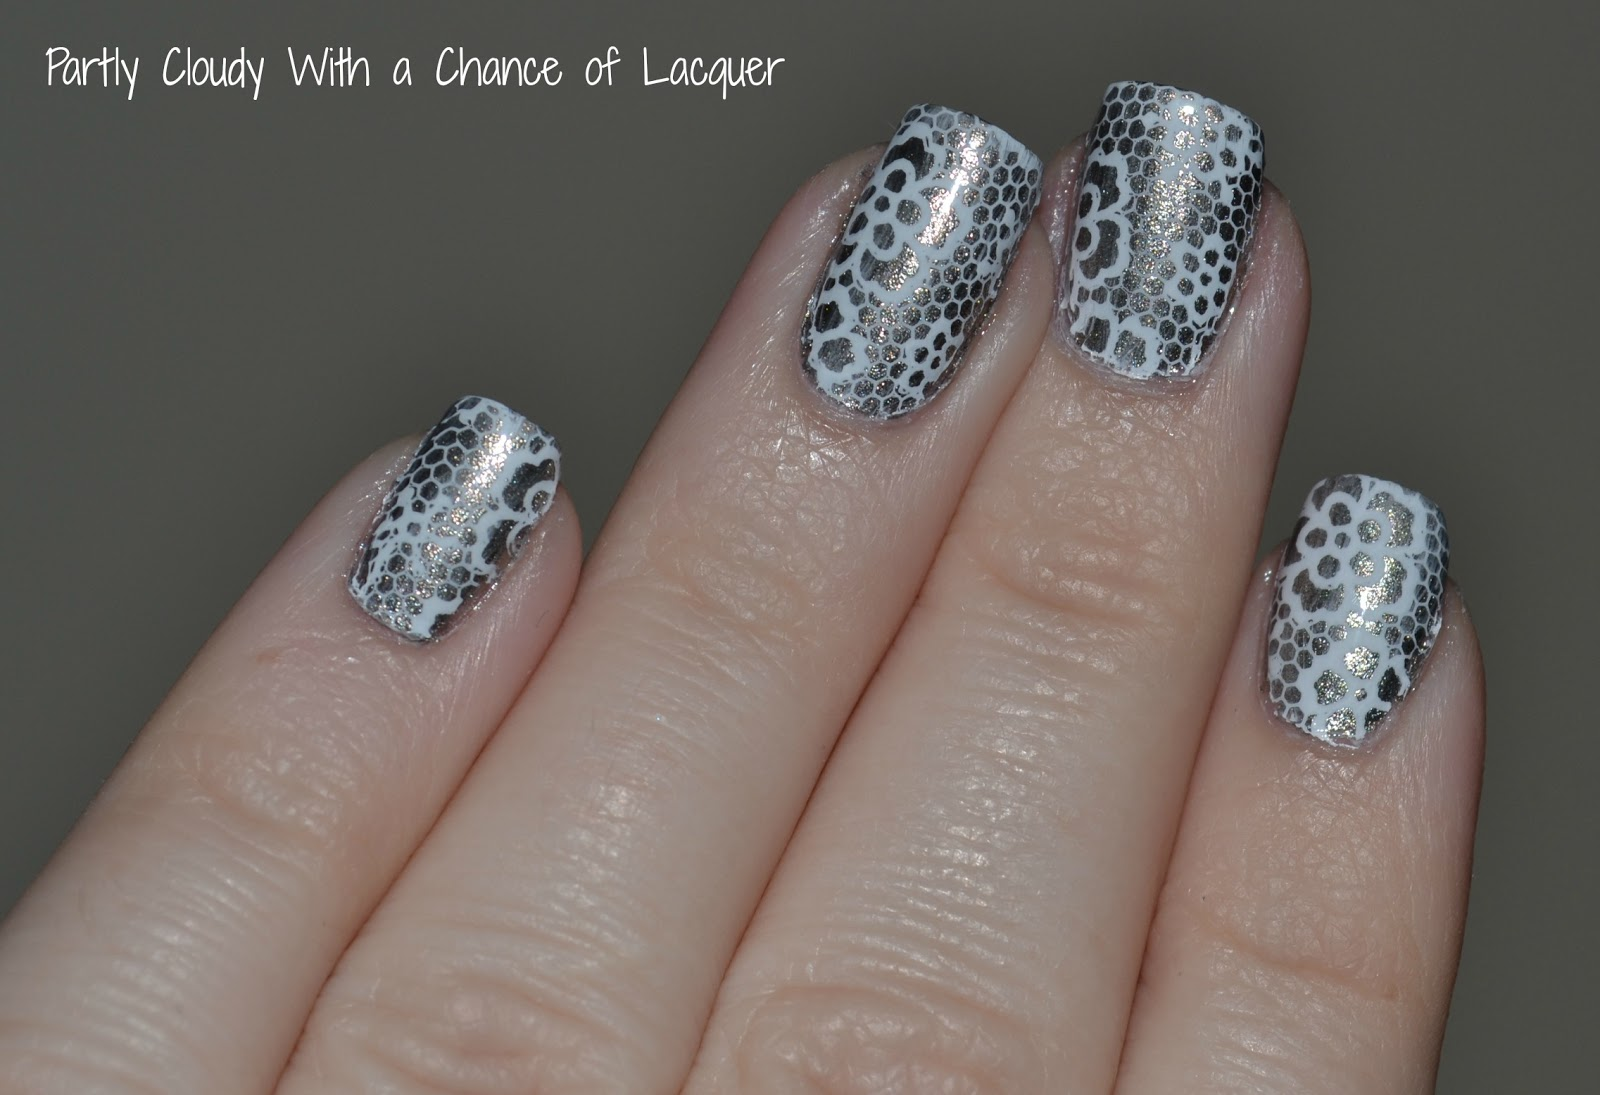 Silver and White Lace Stamped Nails | Partly Cloudy With a Chance of ...